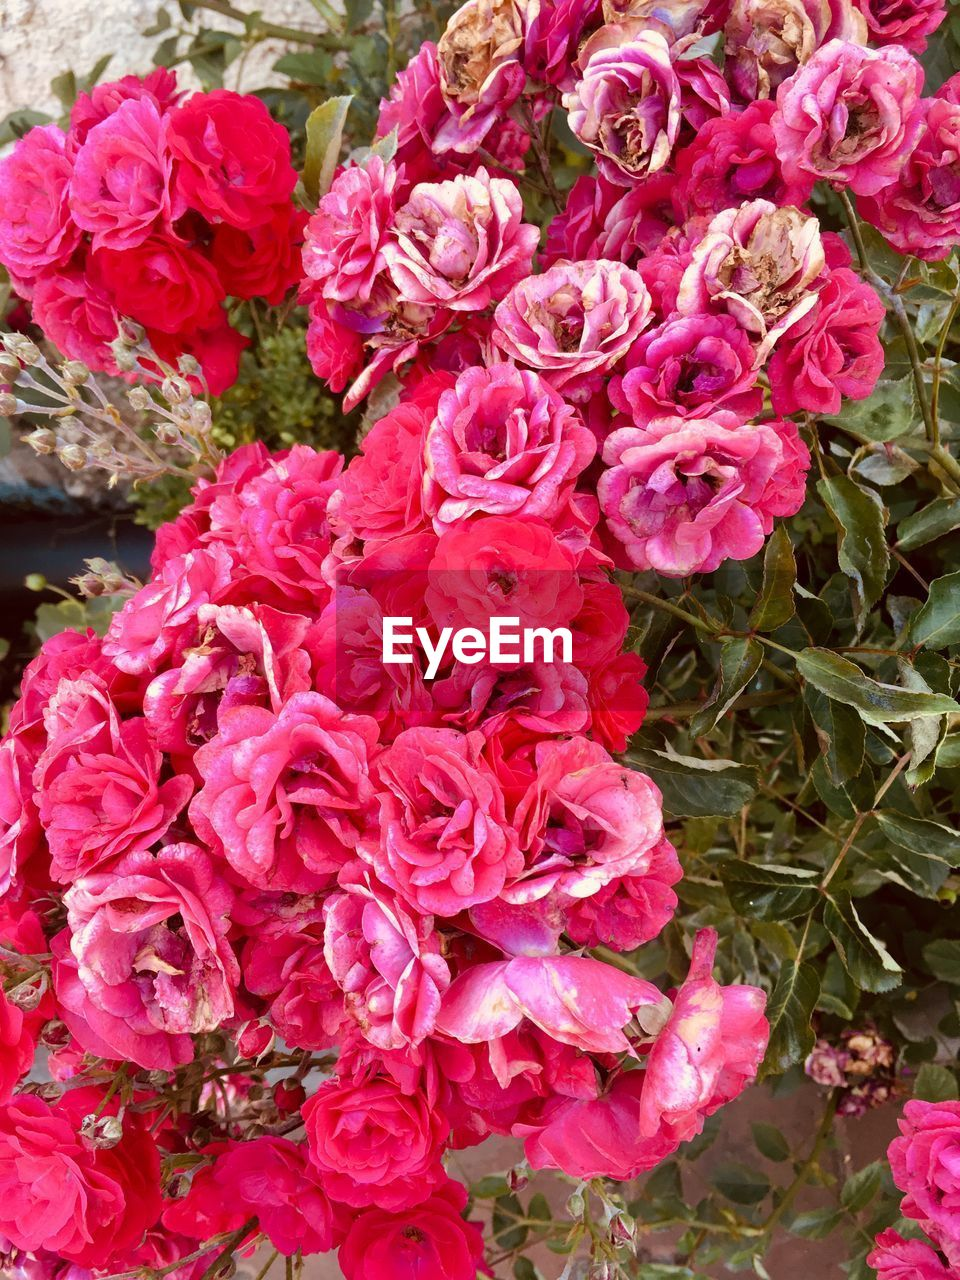 flowering plant, flower, beauty in nature, plant, fragility, vulnerability, freshness, petal, pink color, close-up, flower head, inflorescence, rose, nature, rose - flower, no people, high angle view, day, flower arrangement, bouquet, bunch of flowers, outdoors, springtime